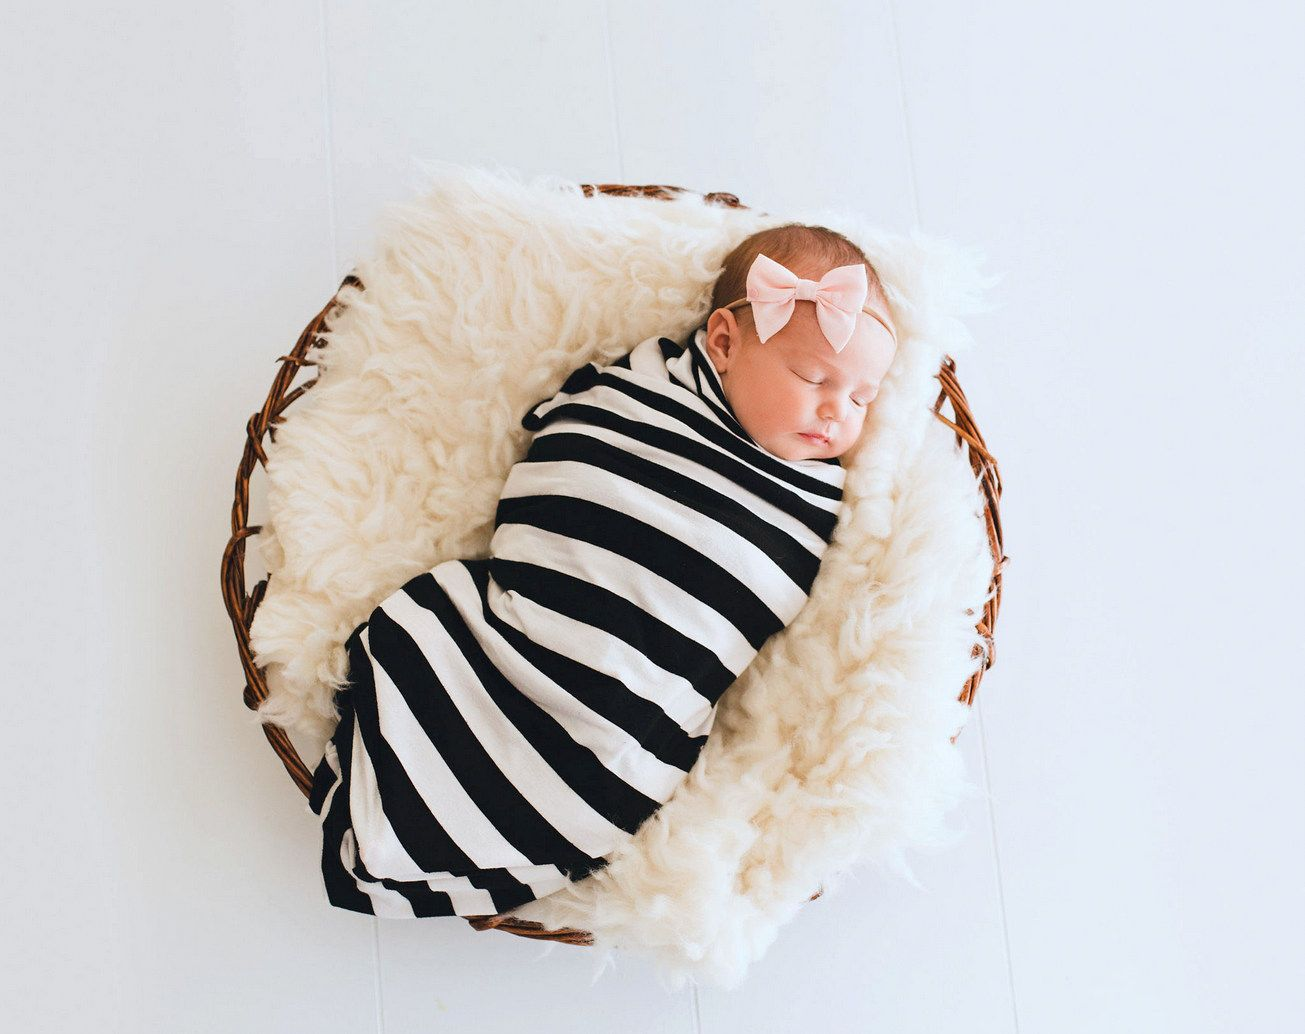 Last week, Tally and I went on a little date over to visit Samantha Miller who took these gorgeous newborn photos. I haven't had newborn photos taken since Ella was a baby, and I didn't…